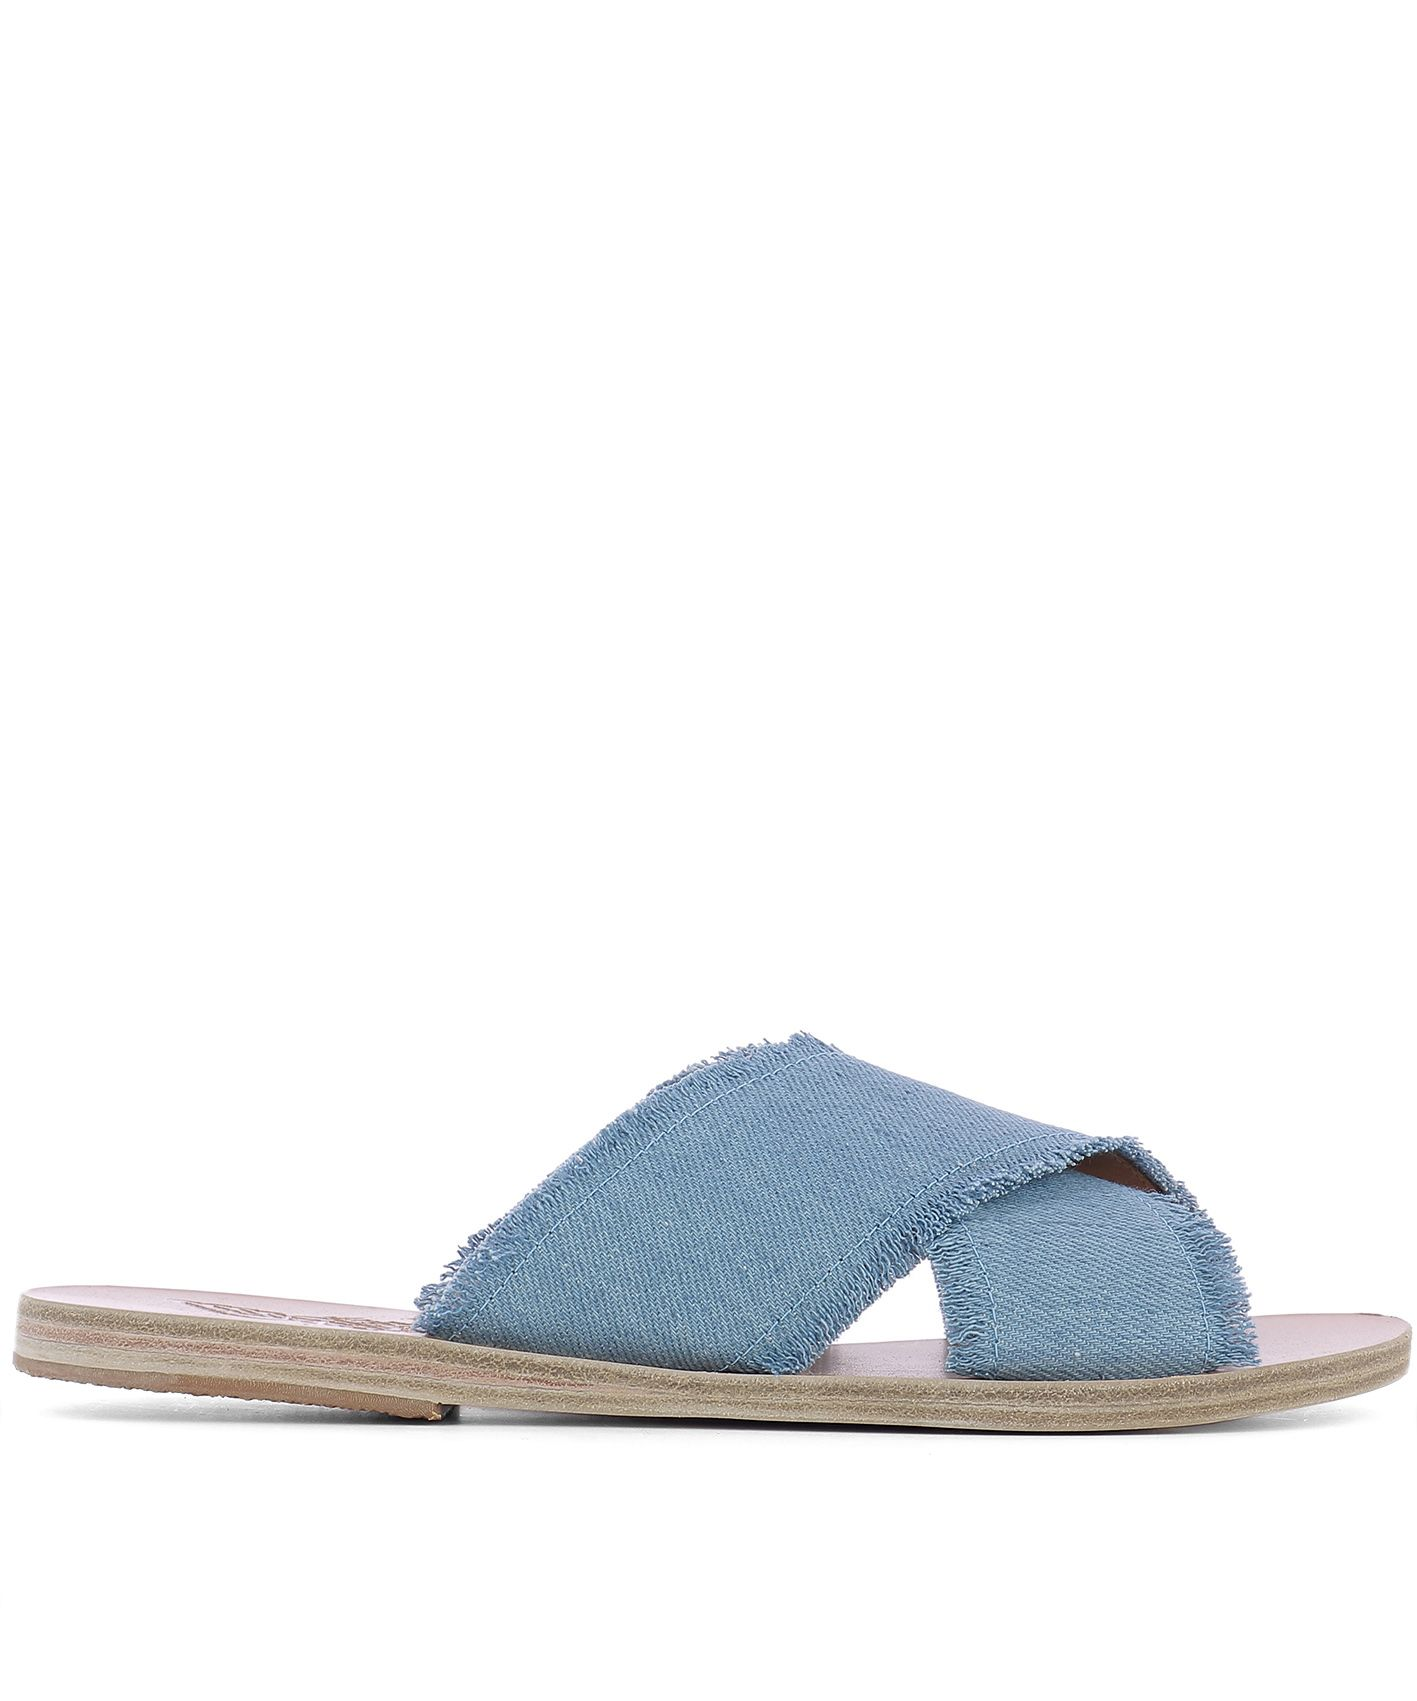 Light Blue Fabric Sandals